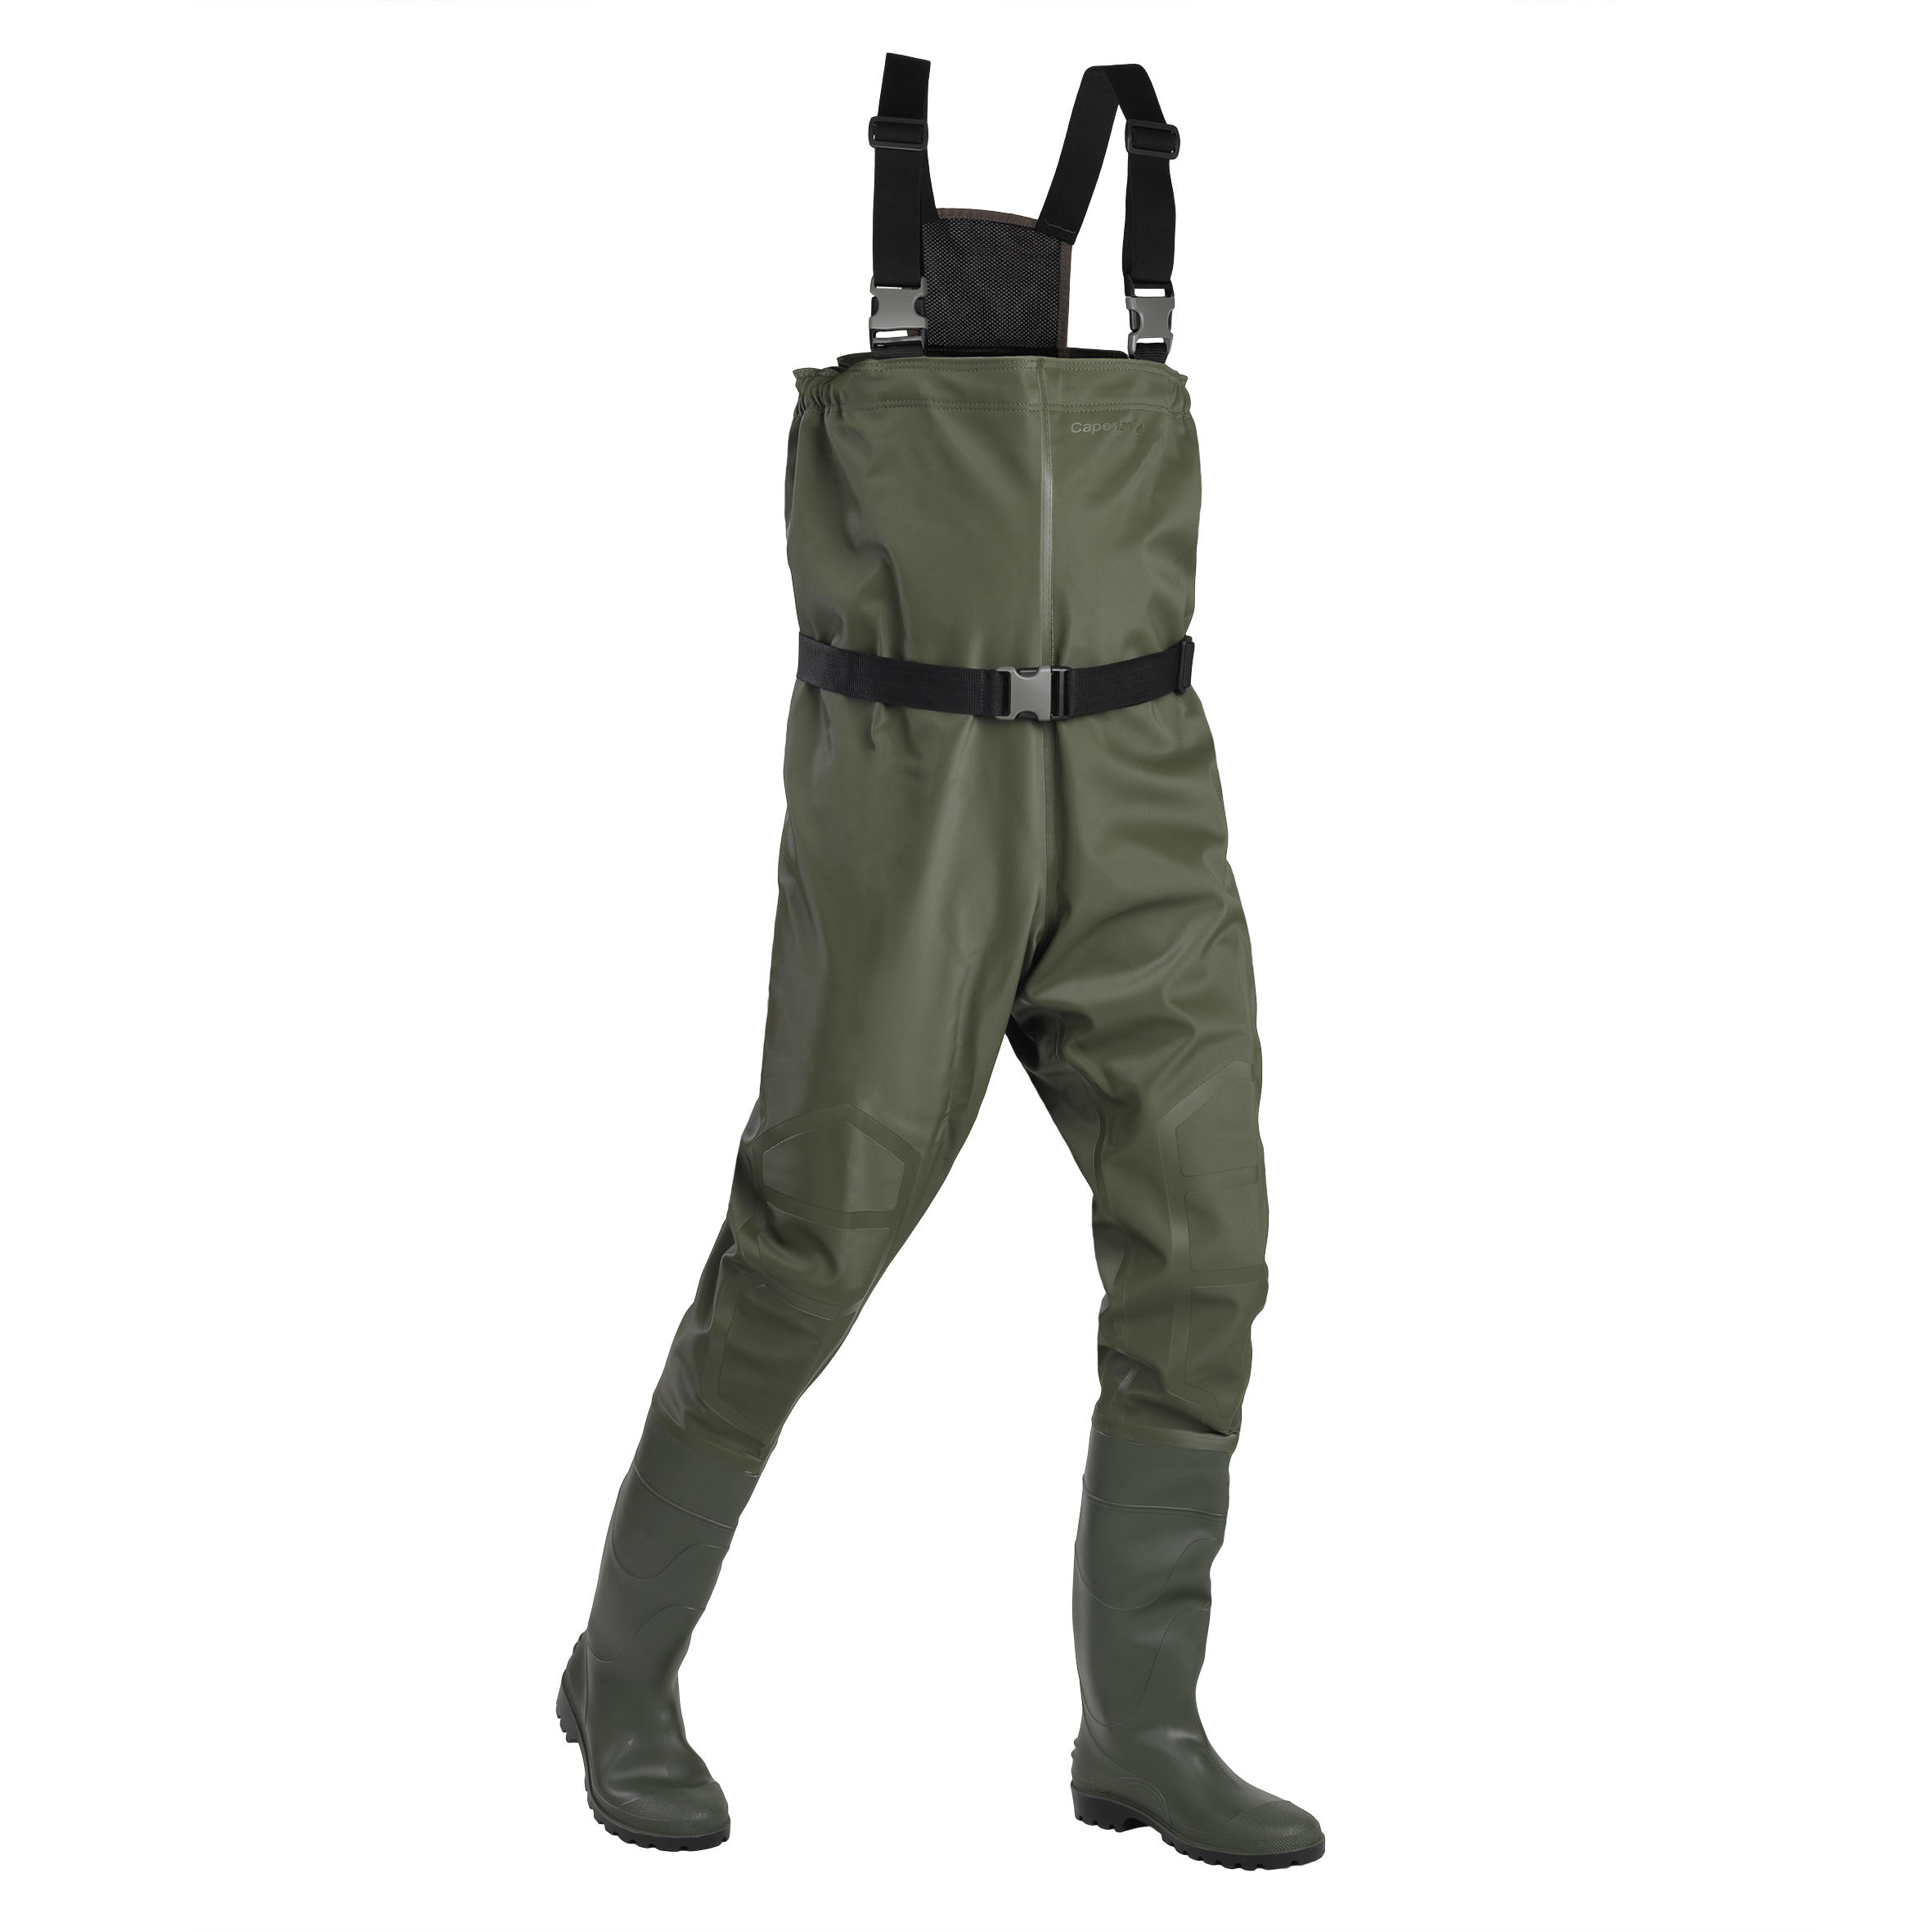 WDS-1 Fishing Waders